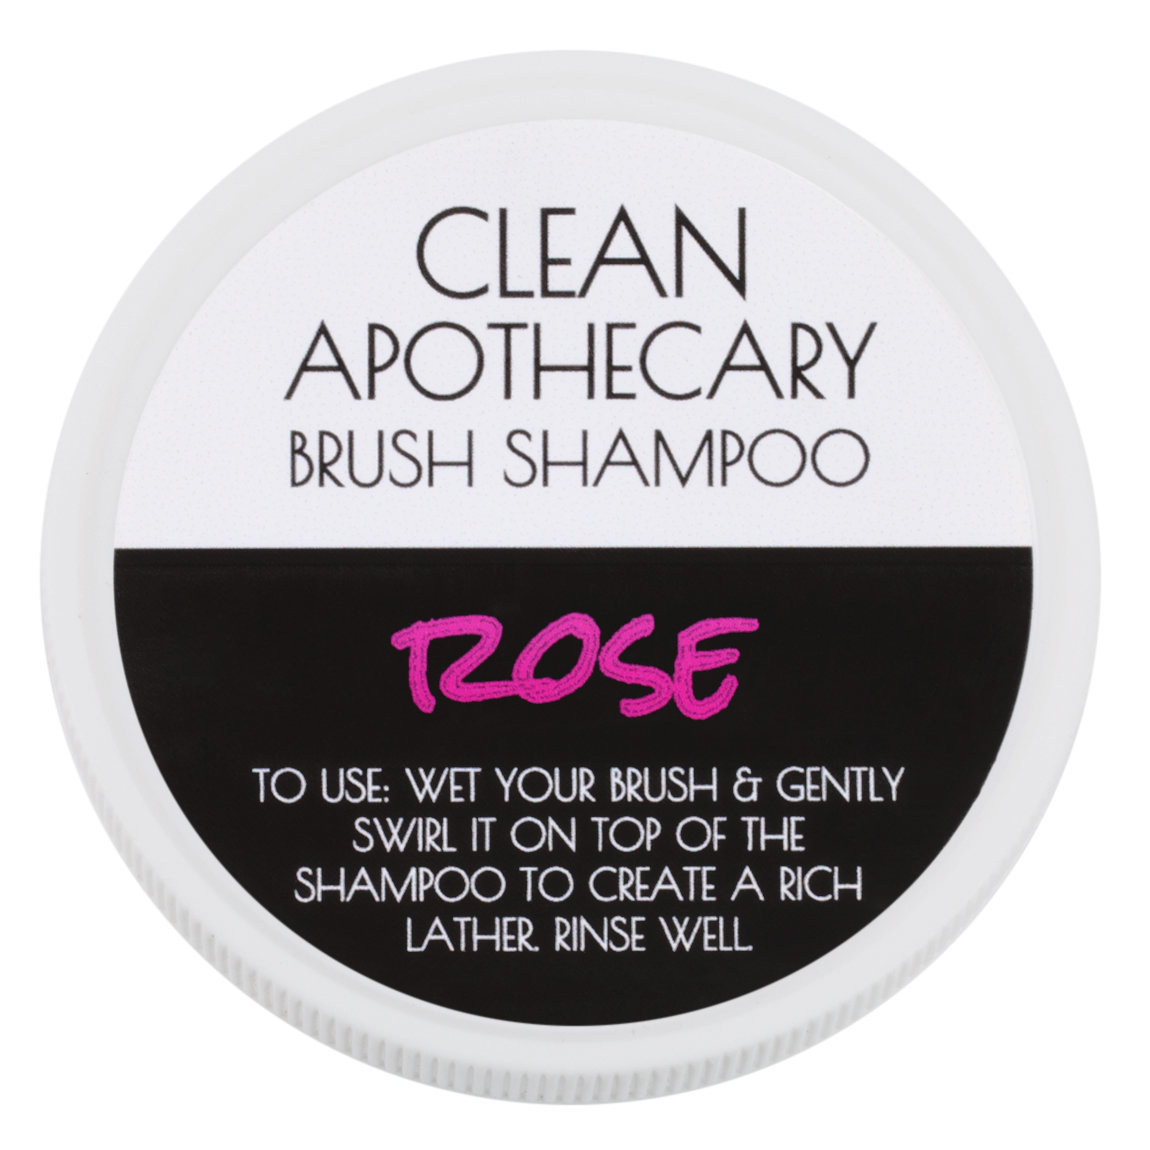 Clean Apothecary Brush Shampoo Rose alternative view 1 - product swatch.